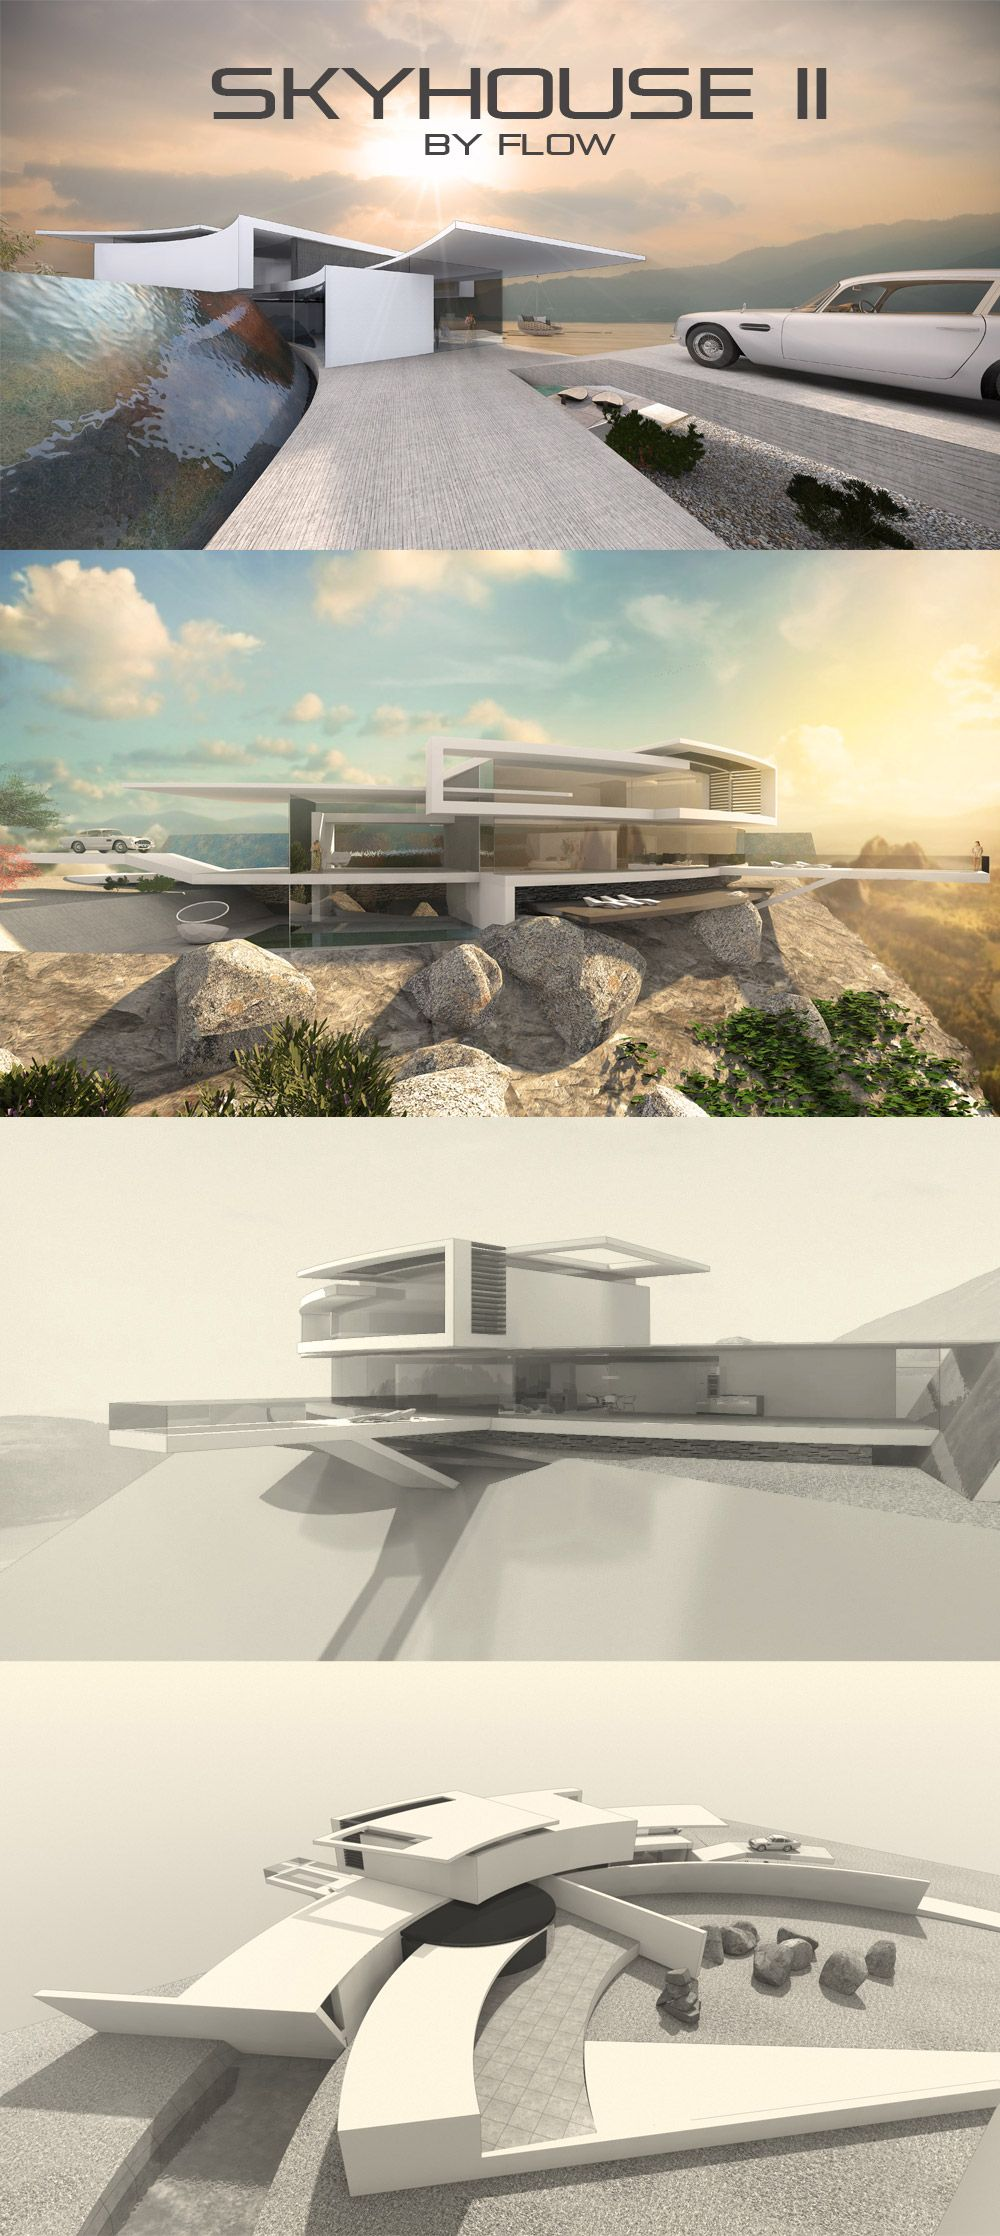 Futuristische villa am hang designstudie skyhouse ii for Villa flachdach